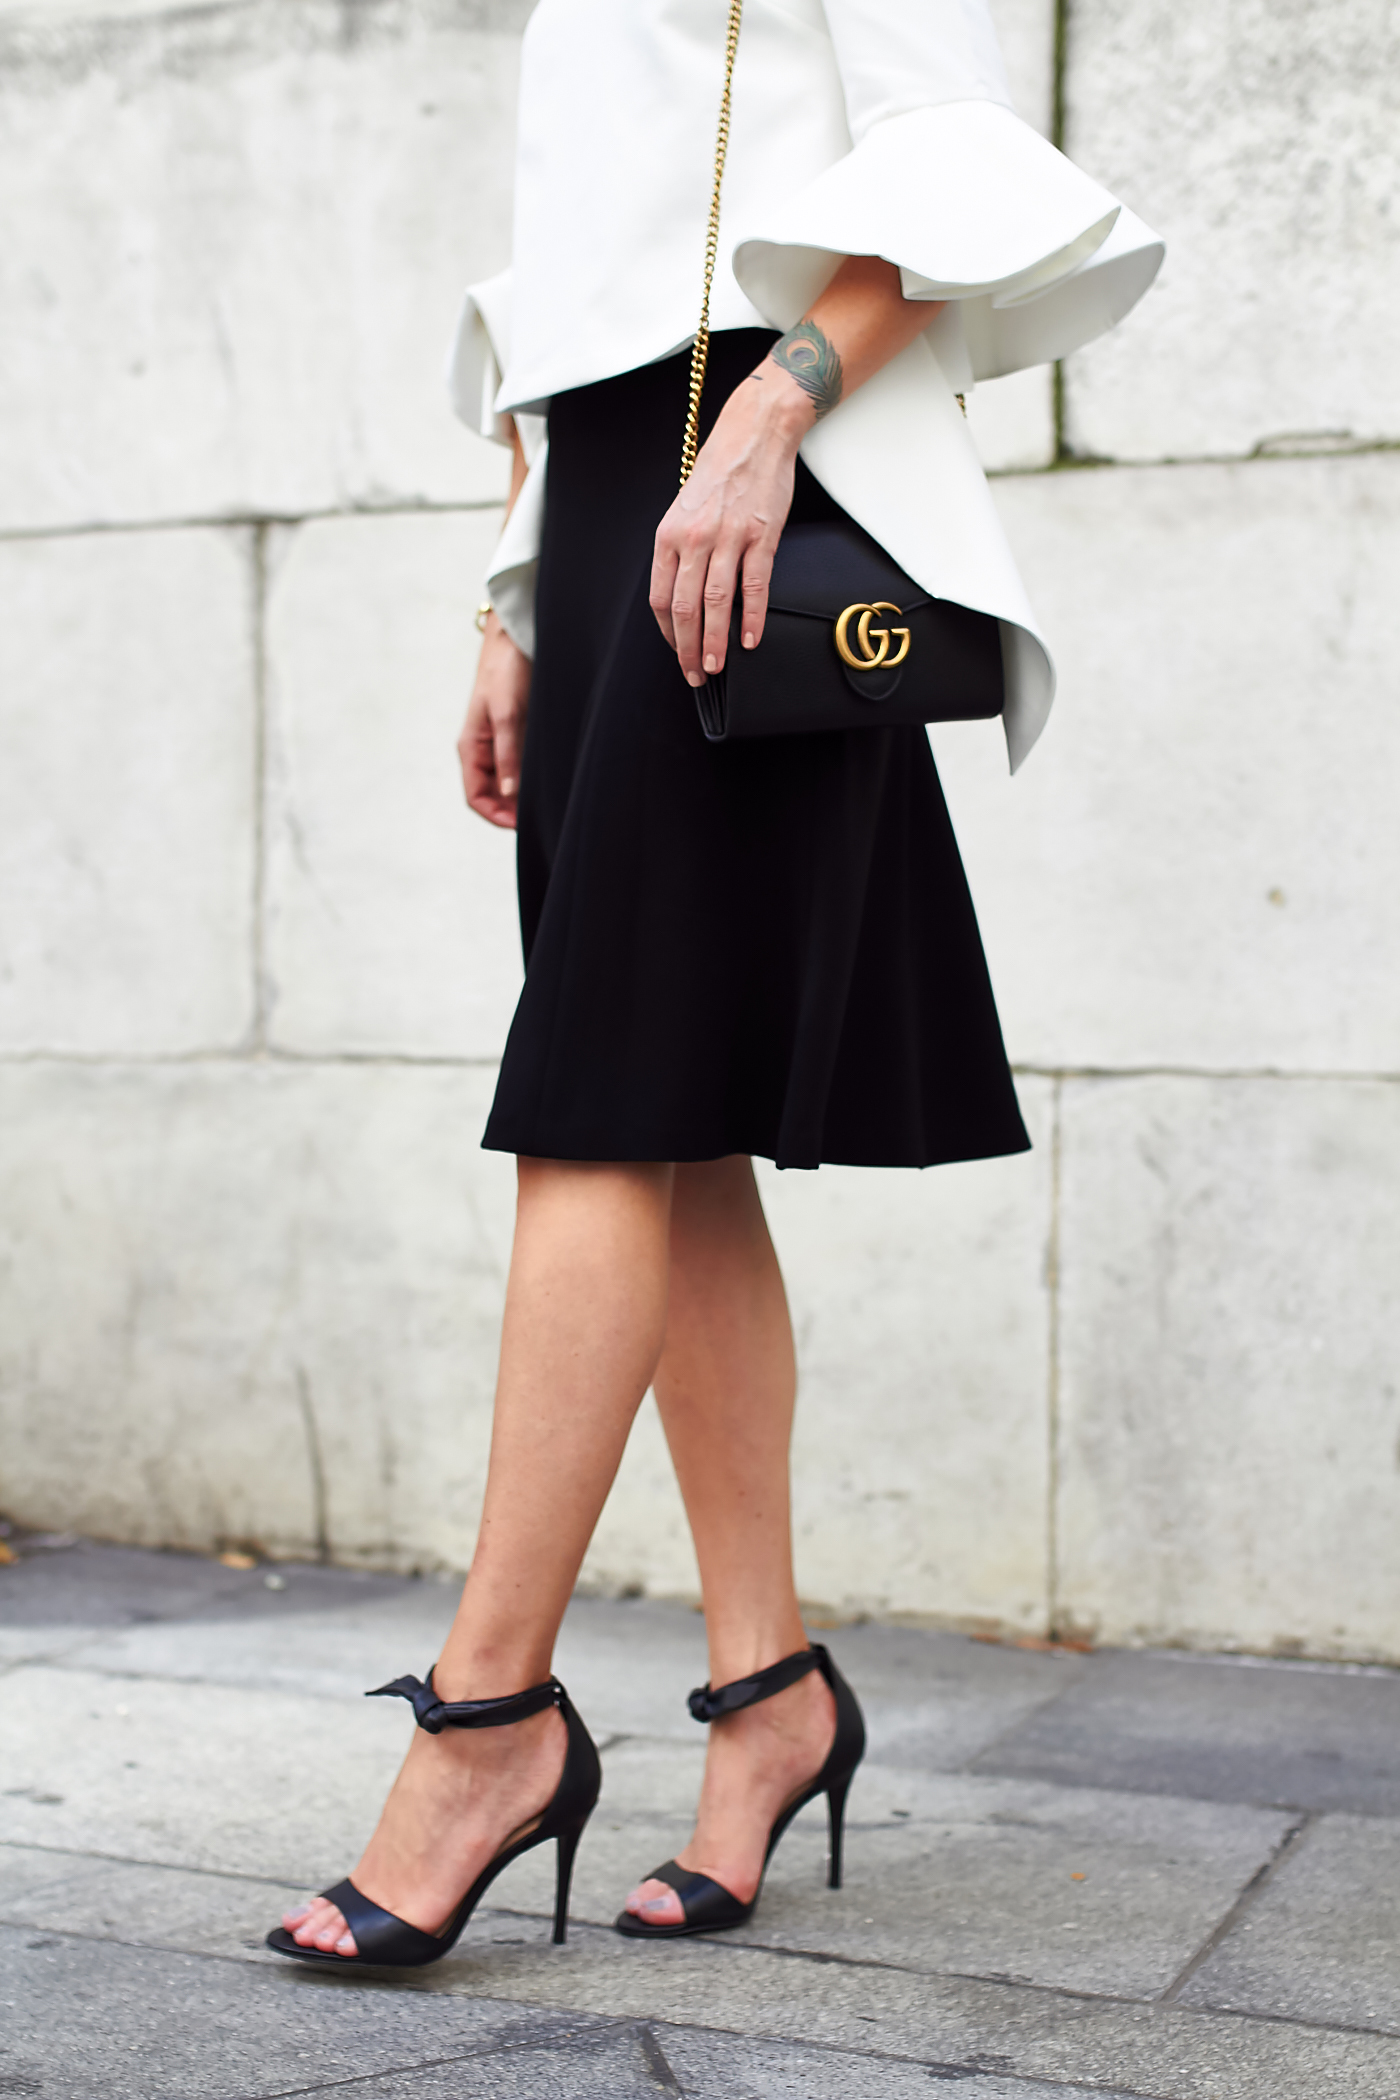 fashion-jackson-club-monaco-dalphine-black-midi-skirt-black-bow-heels-ruffle-sleeve-top-black-gucci-marmont-handbag